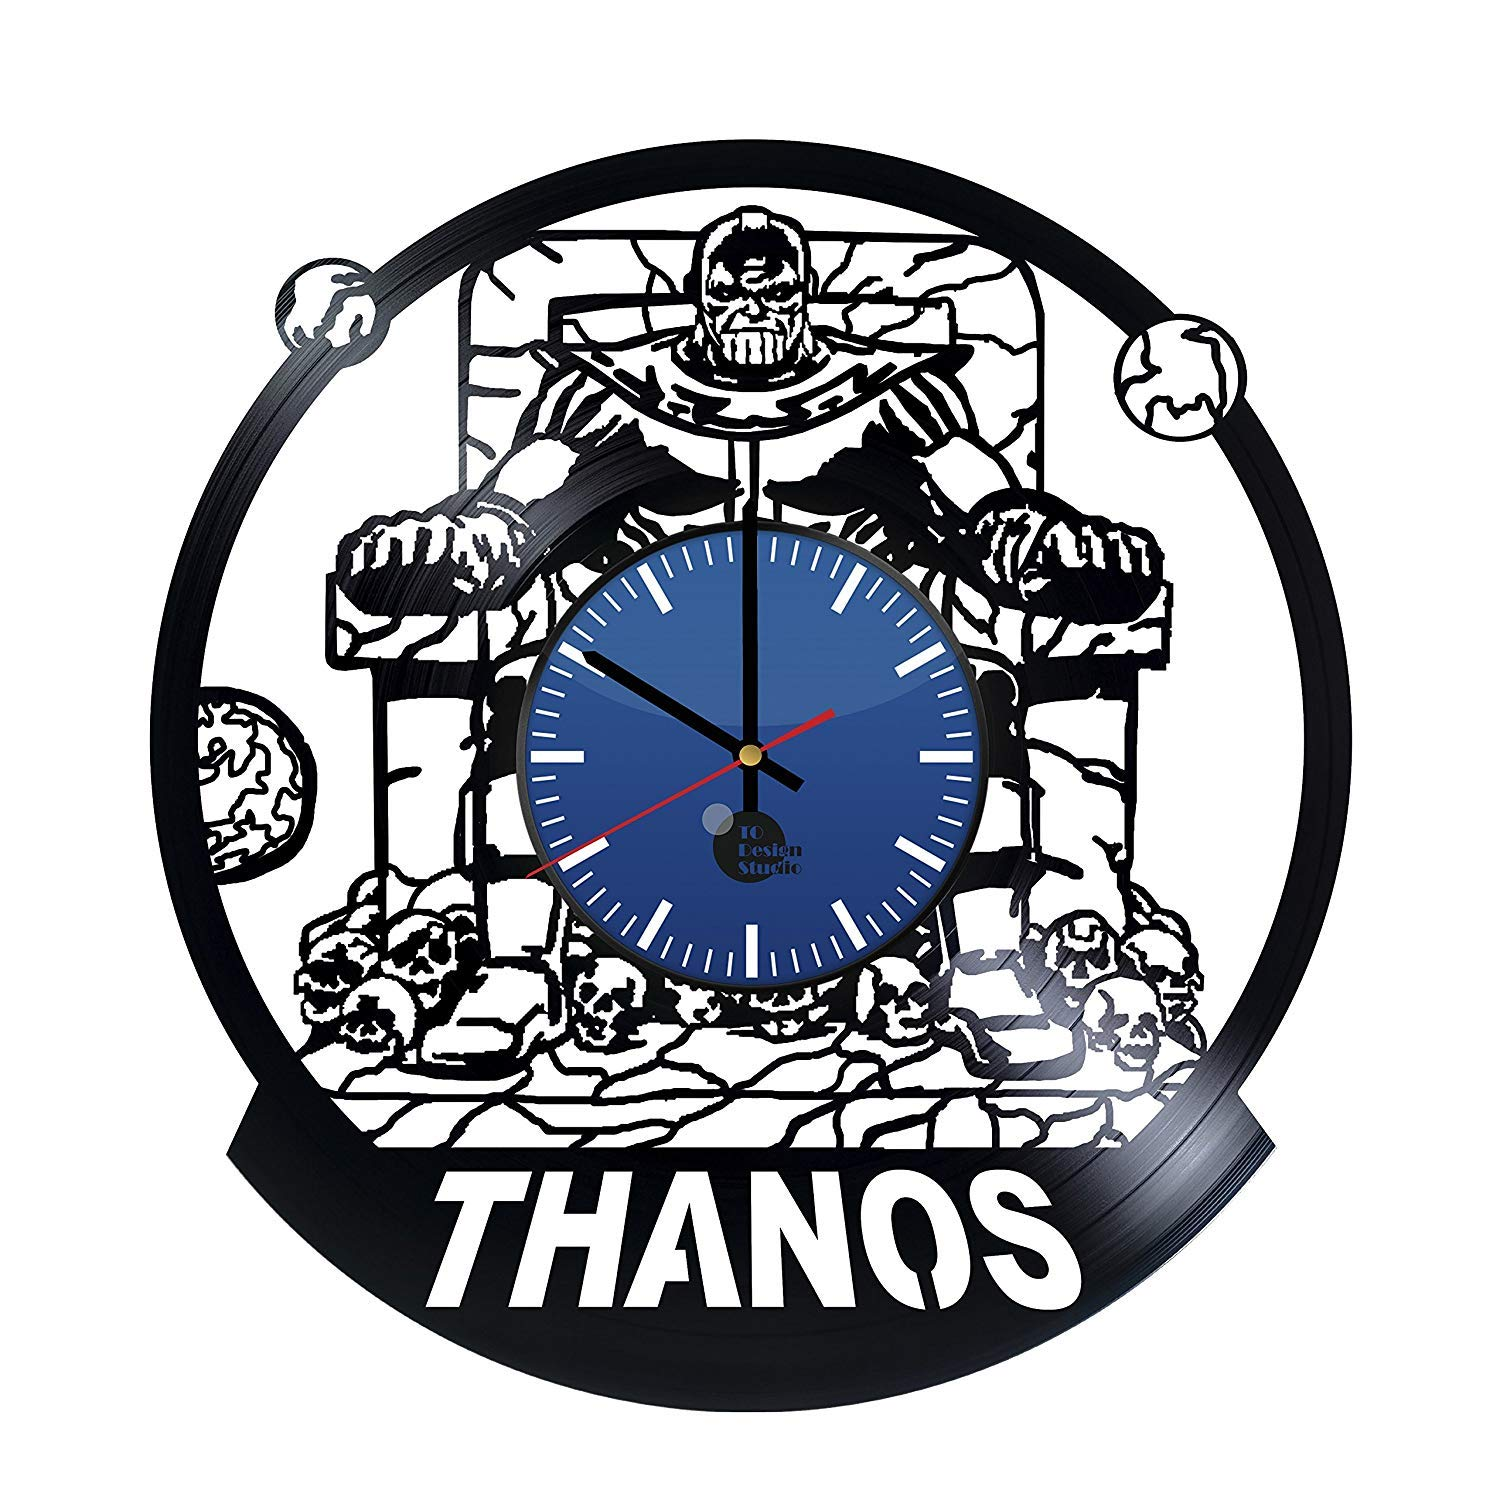 Thanos Comic Handmade Vinyl Record Wall Clock - Get Unique Home and Office Wall Decor - Gift Ideas for Boys and Girls – Thanos Marvel Unique Art Design - Leave us a Feedback and Win Your Custom Clock